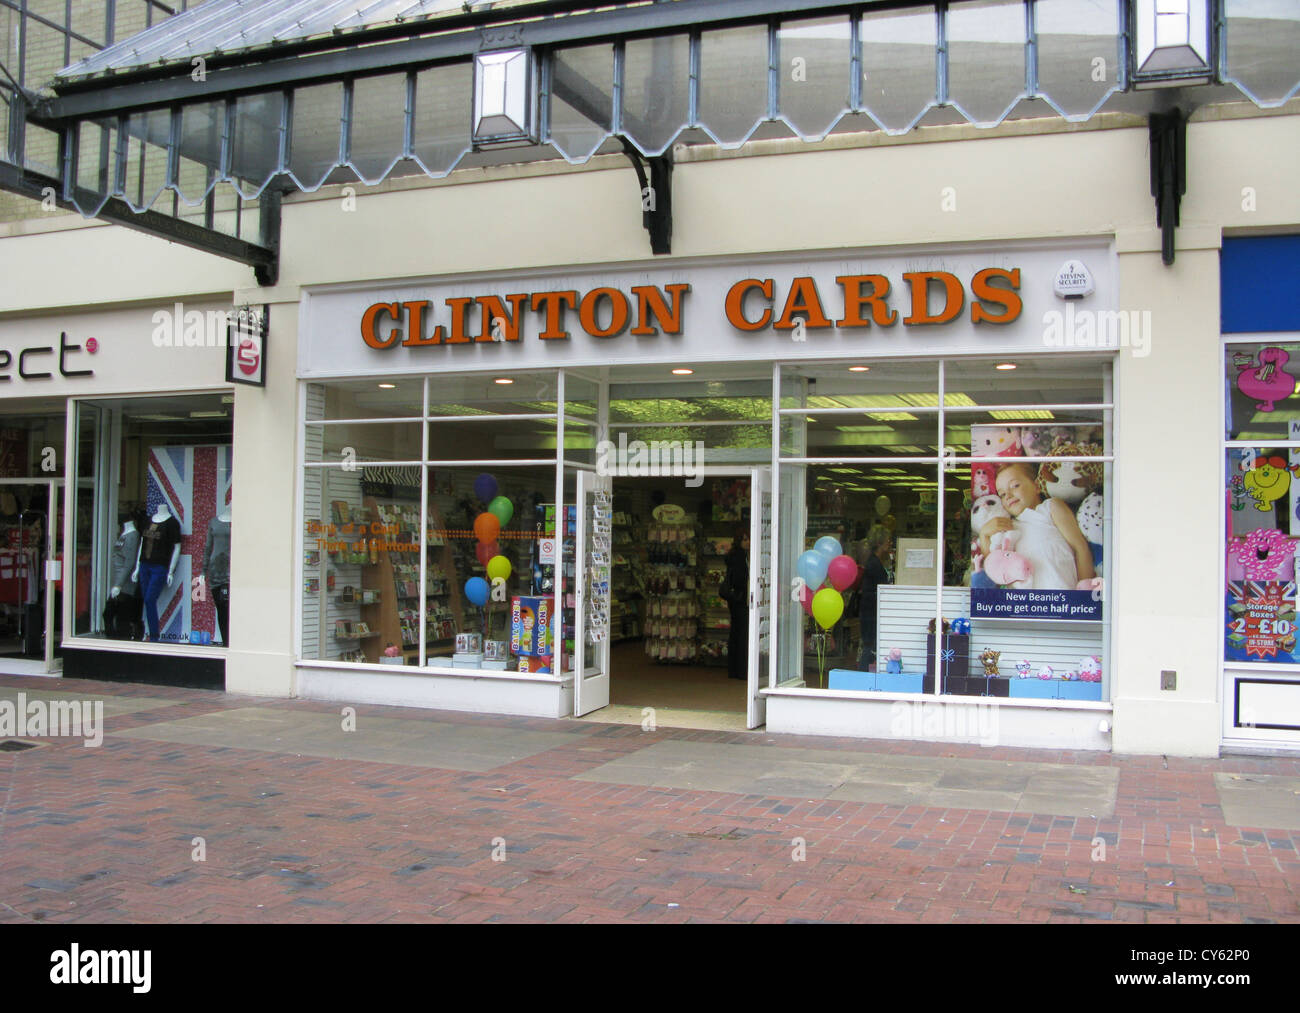 Clinton Cards high street retailer Worthing West Sussex UK - Stock Image